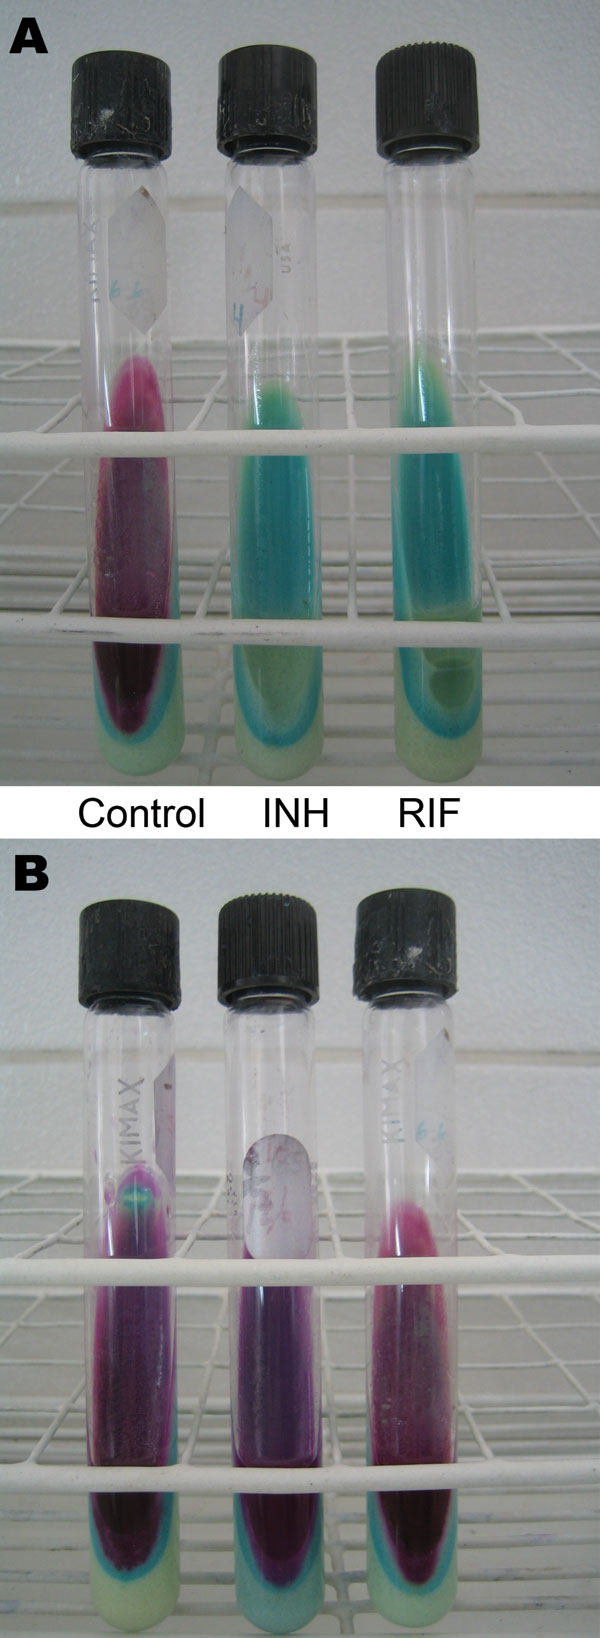 Description and costs of the direct Griess method in Peru. A) Pan-susceptible Mycobacterium tuberculosis isolate. B) M. tuberculosis isolate resistant to isoniazid (INH) and rifampin (RIF). The left (control) tube in panel A and all tubes in panel B indicate mycobacterial growth. The costs of the test are US $5.30 per sample, including personnel, materials (items that can be reused), and supplies (reagents and consumable items), and US $4.80 per sample, including materials and supplies.